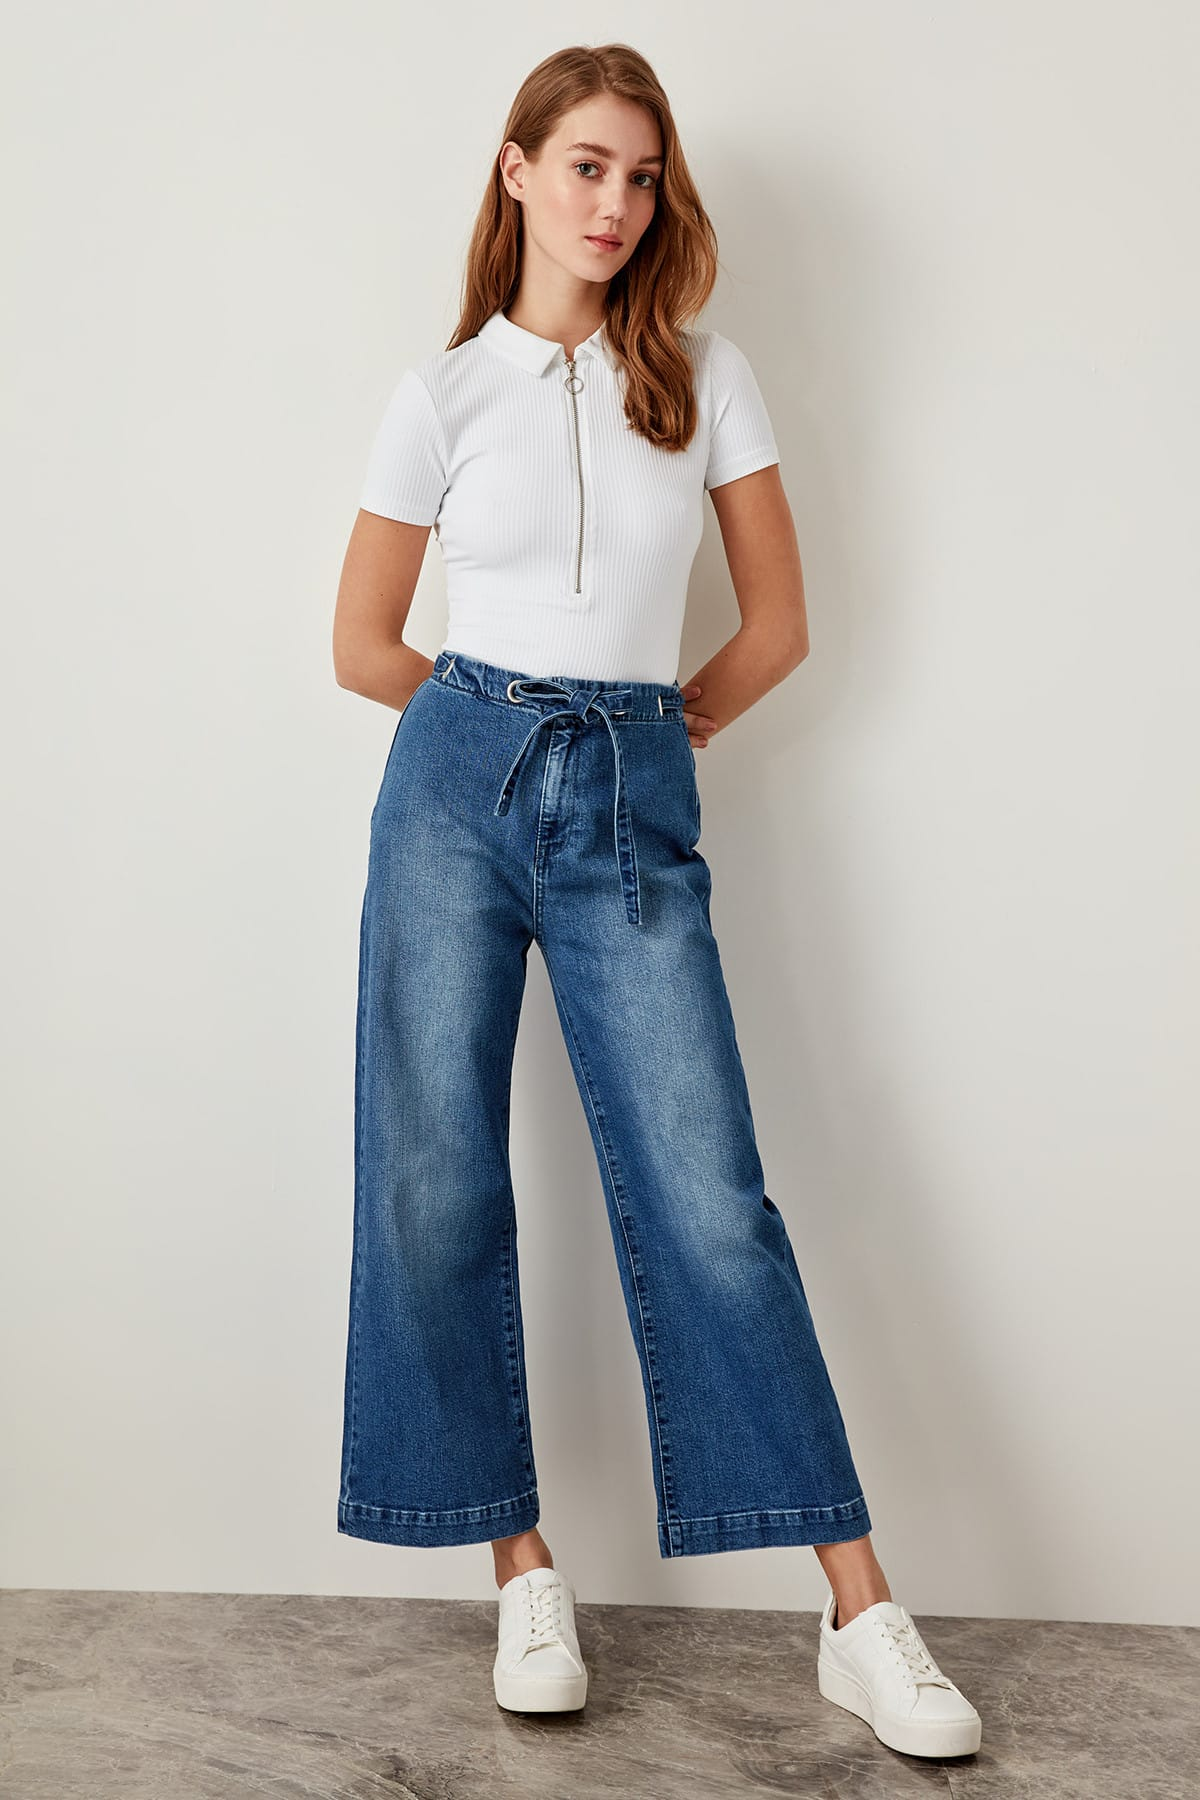 Trendyol High Waist Wide Leg Jeans Blue Binding Detailed